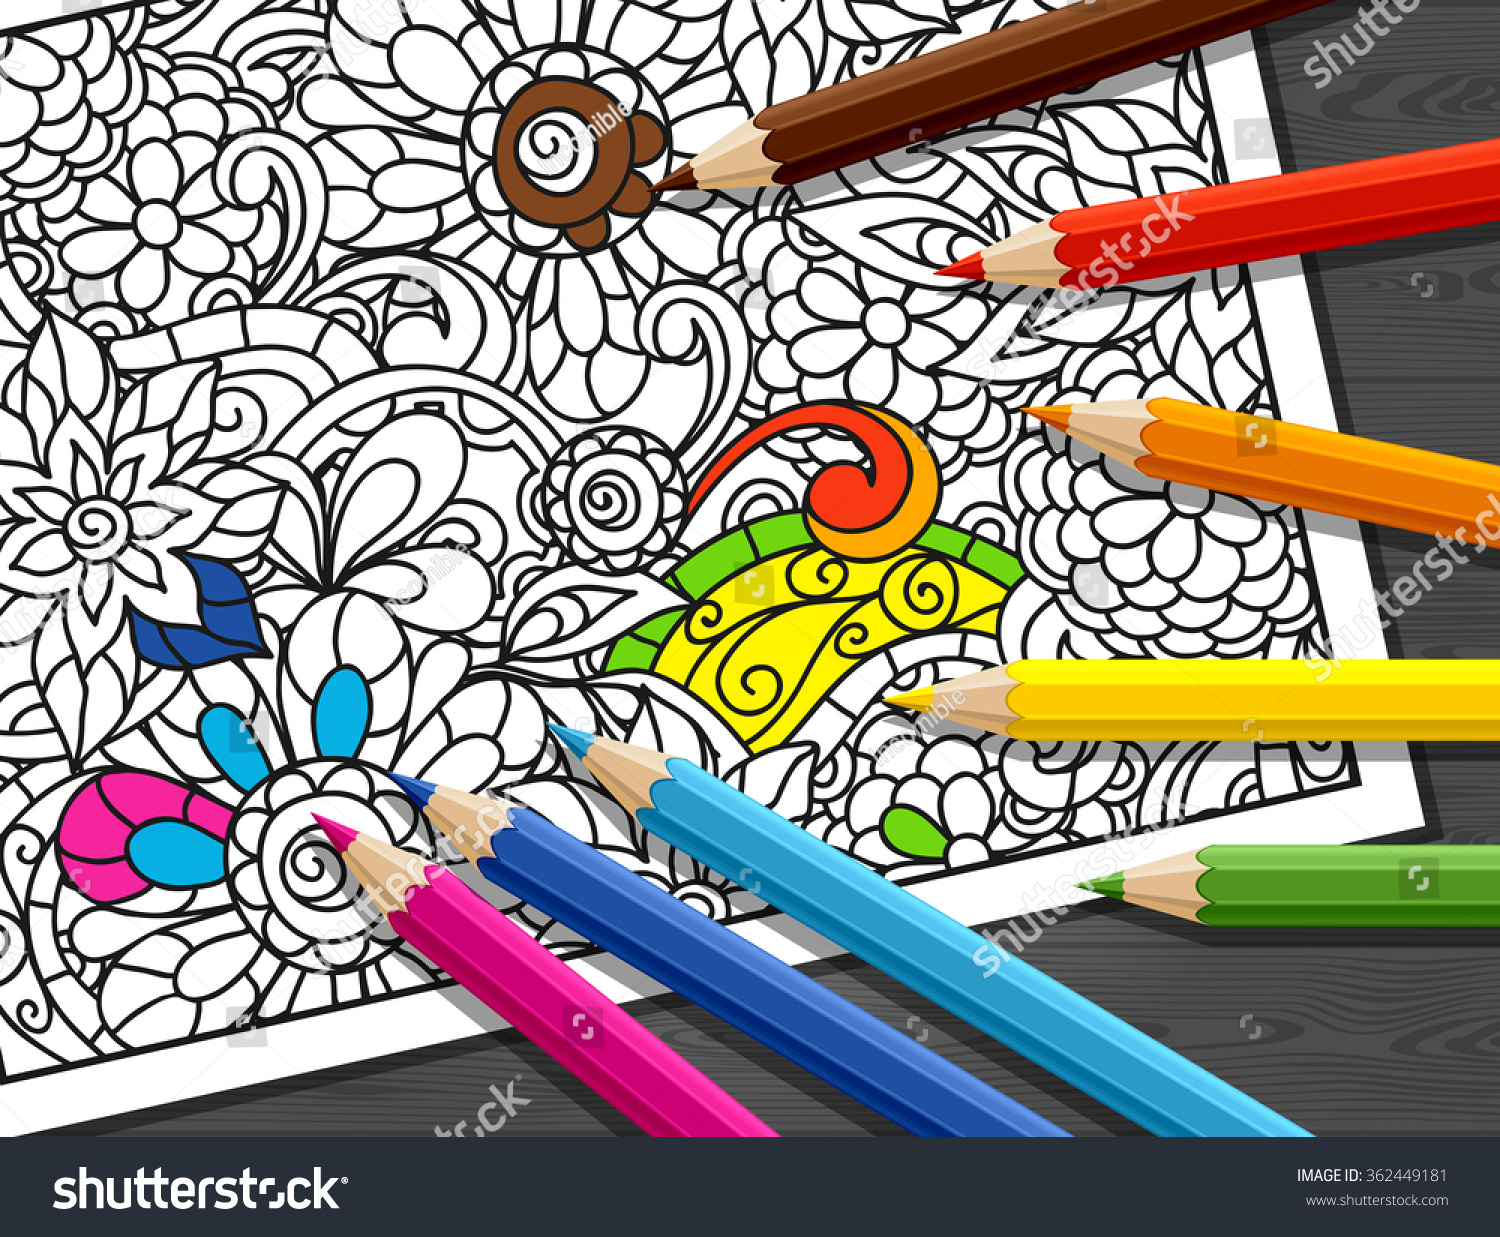 Adult Coloring Concept Pencils Printed Pattern Stock Vector ...